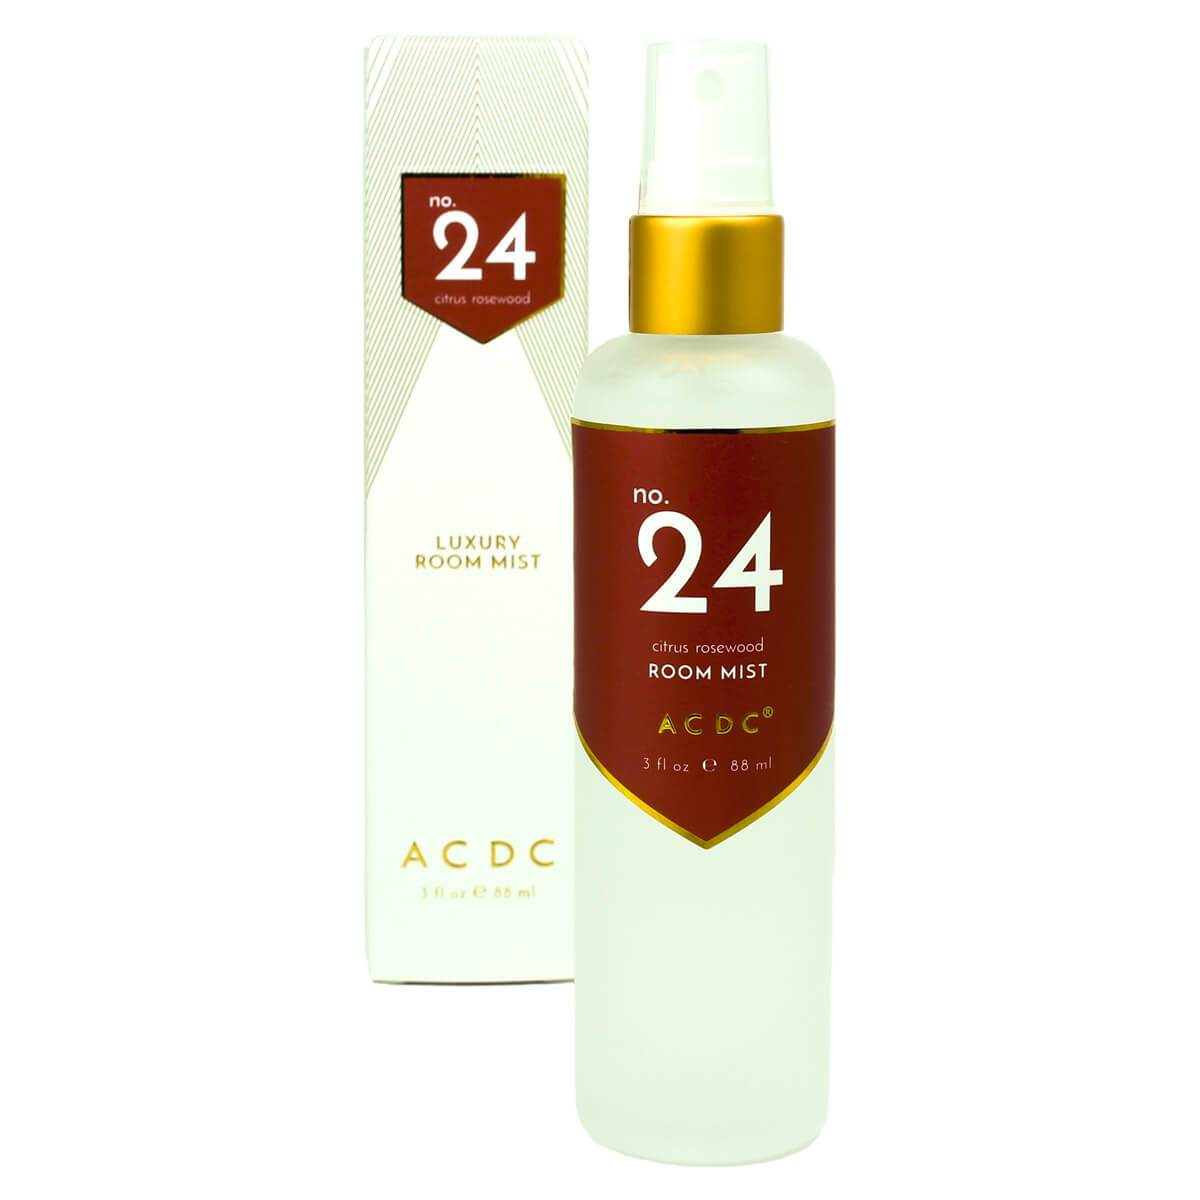 ACDC Room Sprays No. 24 Citrus Rosewood Room Mist